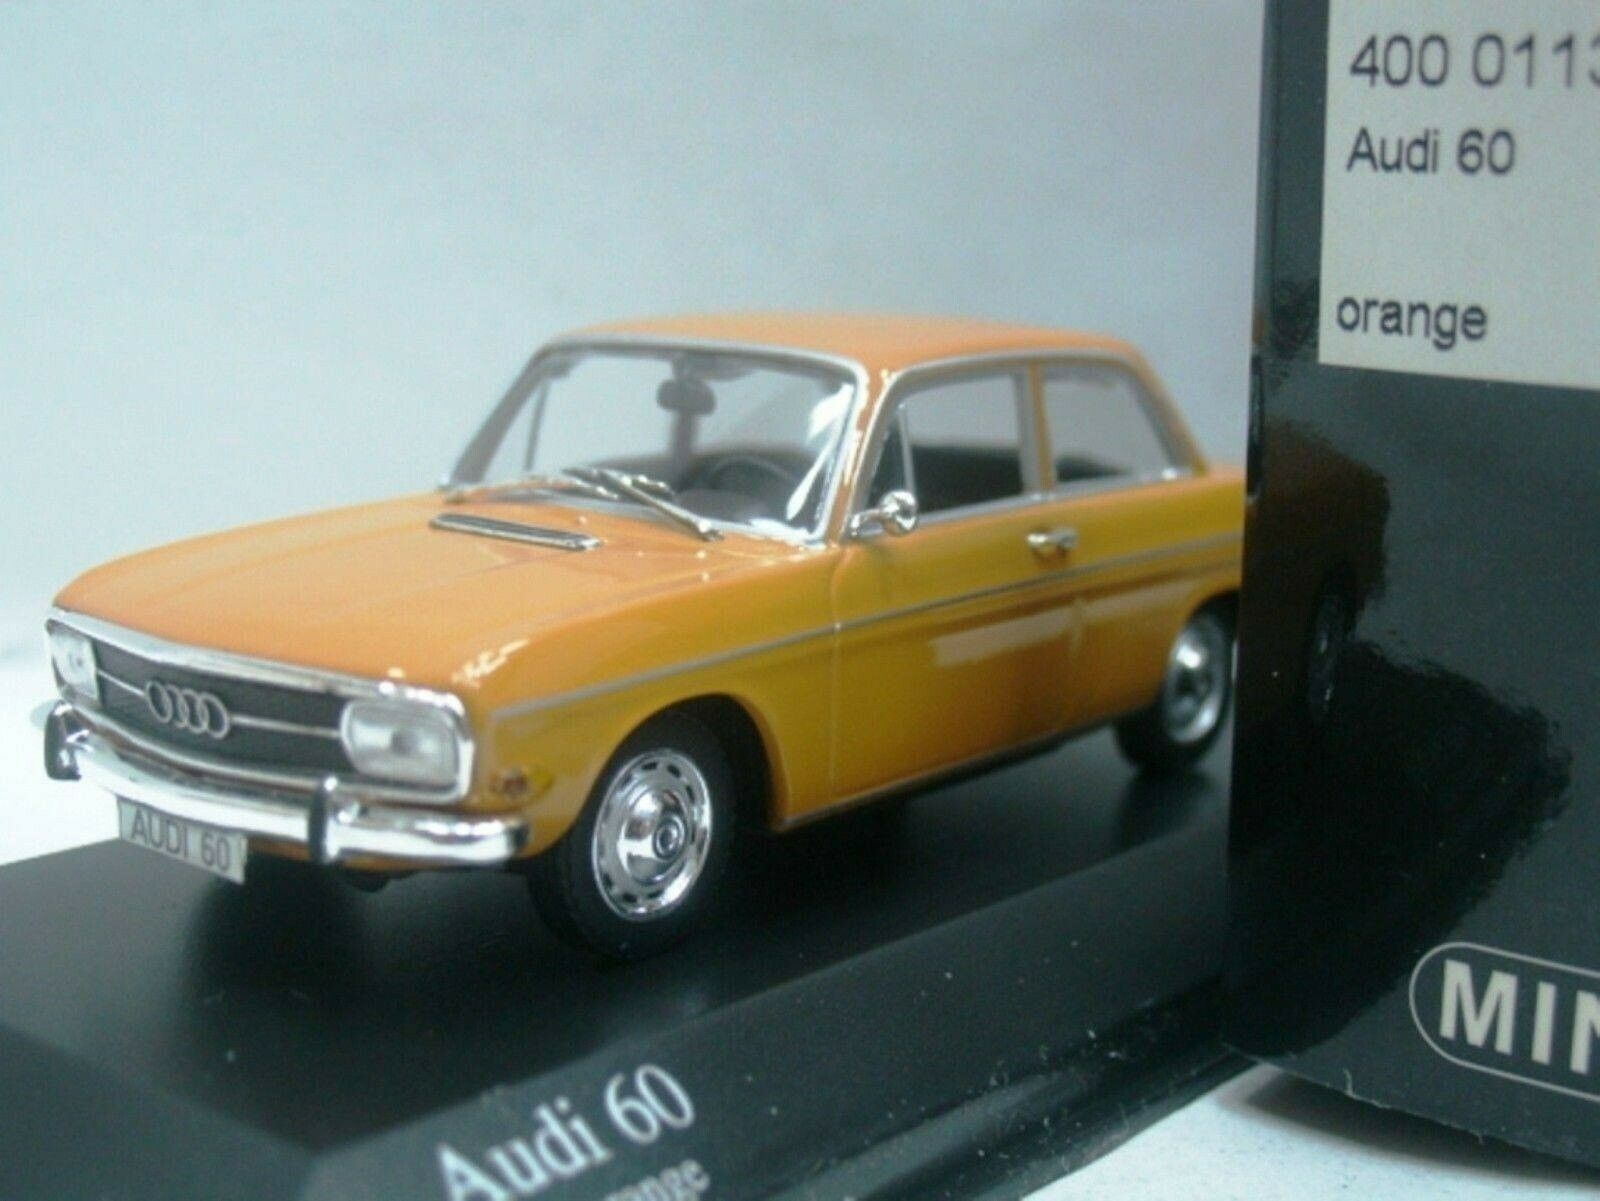 Wow extrêmement rareI 60 F103 1.8 L 2Drs berline 1969 Orange 1 43 Minichamps - 100